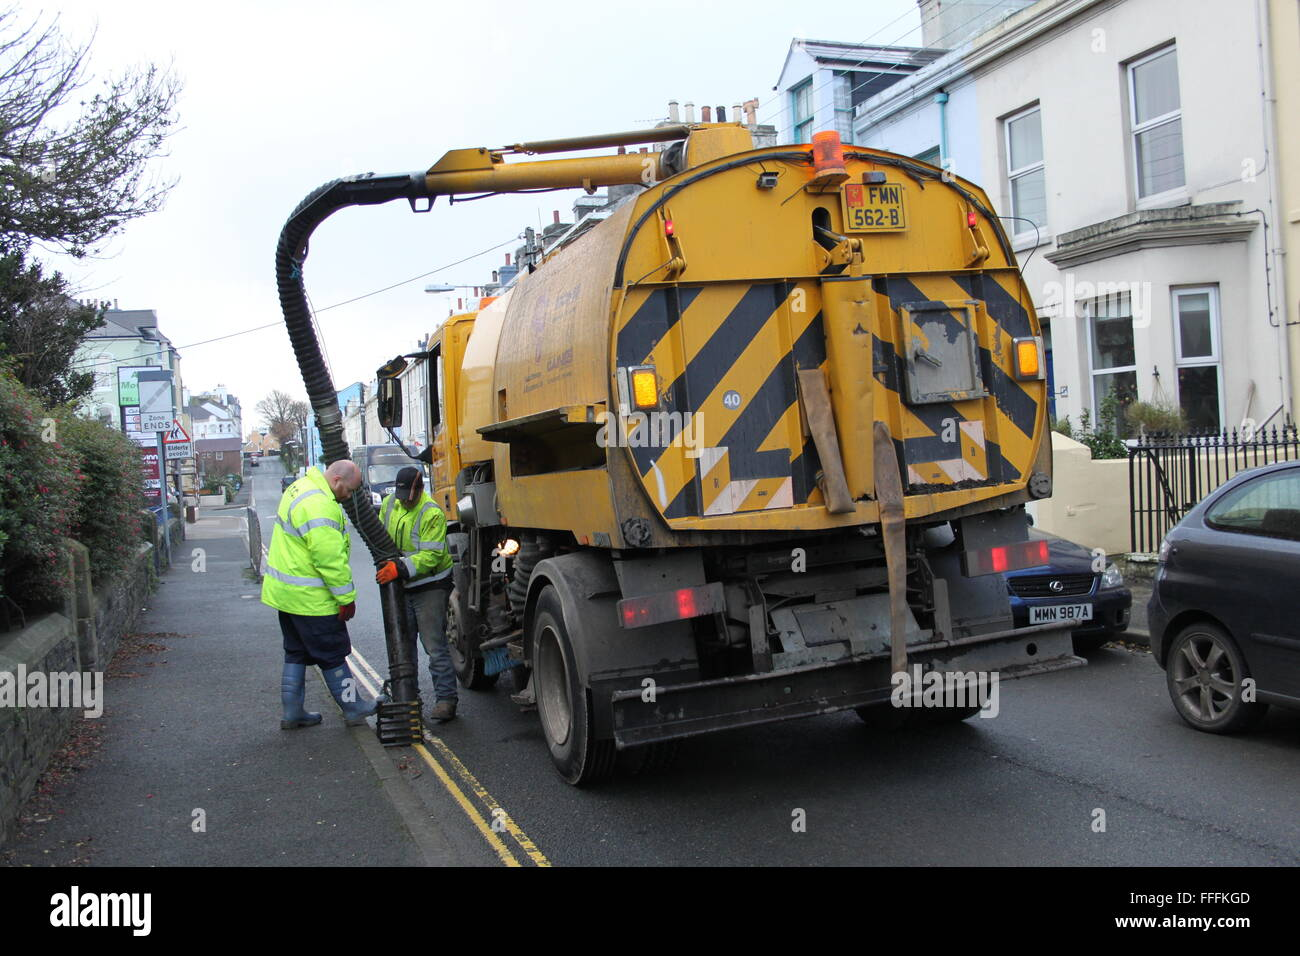 Clearing the drains to prevent flooding in Ramsey, Isle of Man - Stock Image